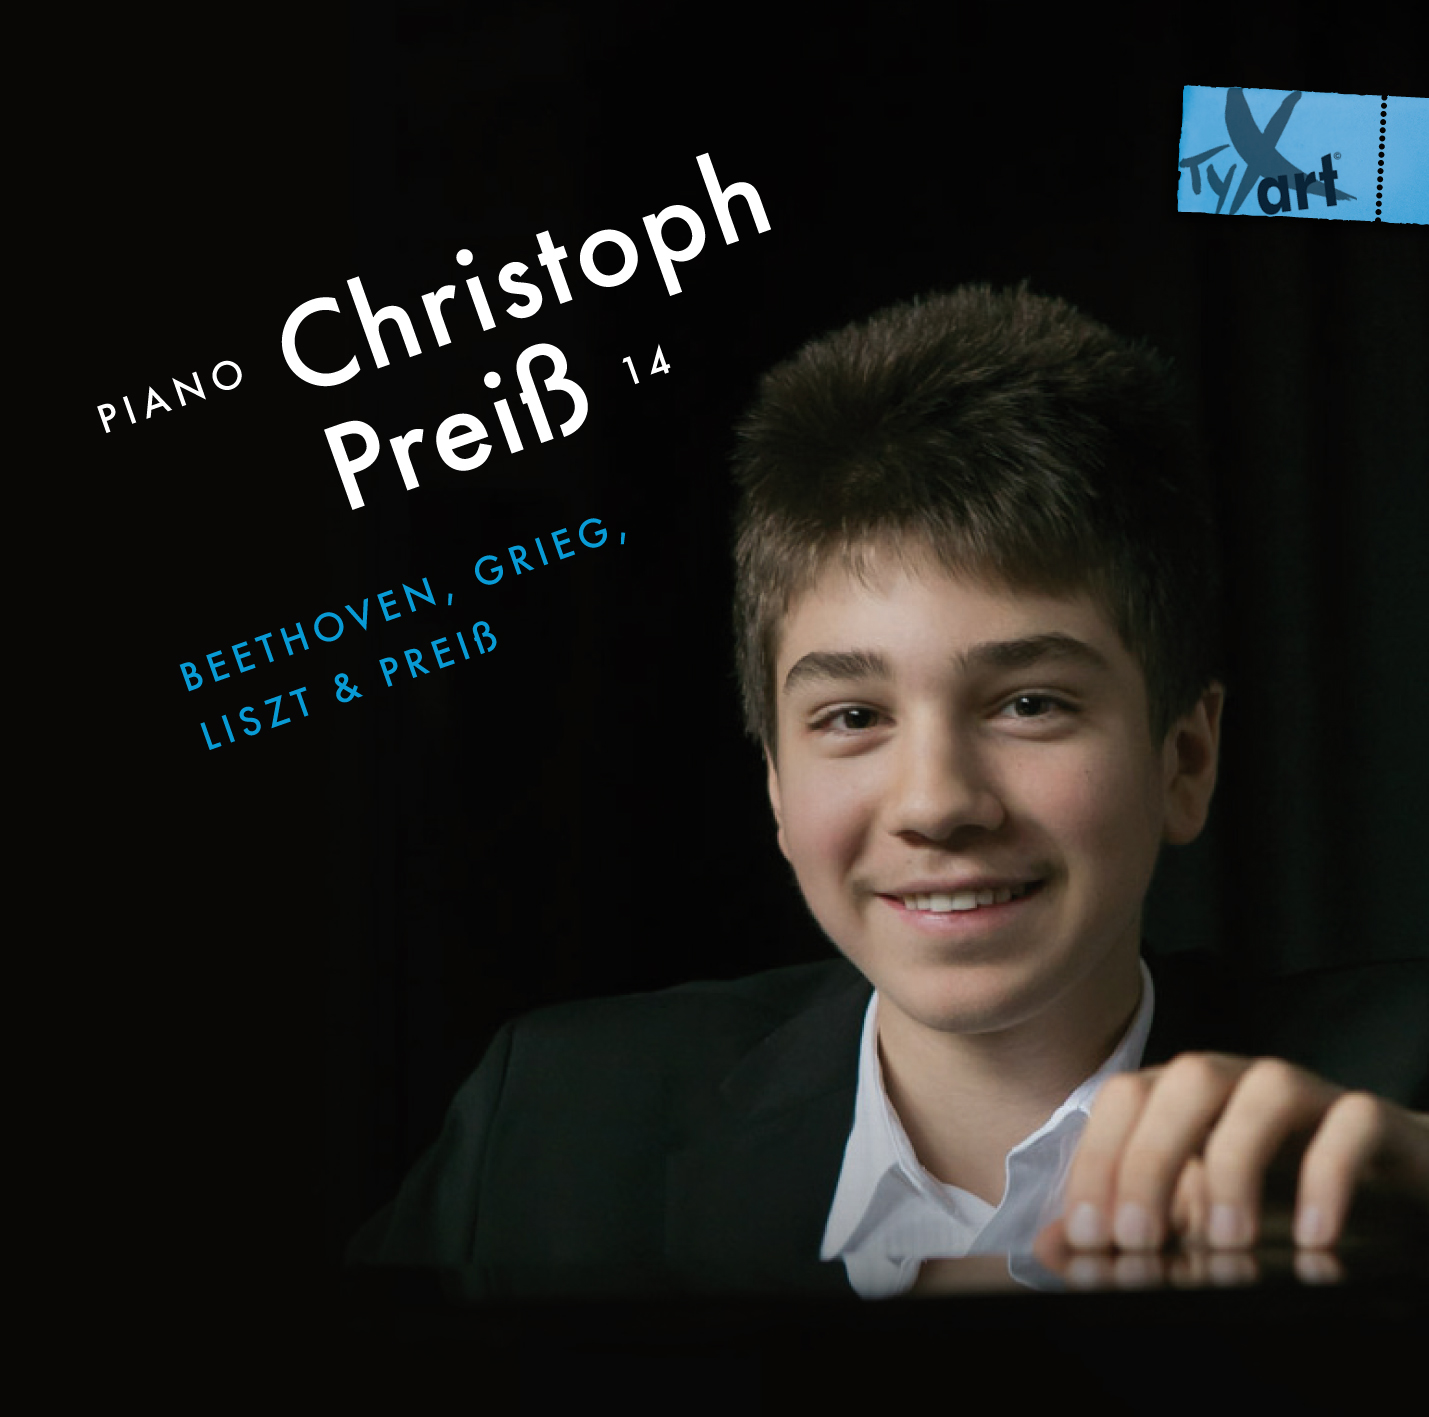 Christoph Preiss, 14, Piano: Beethoven, Grieg, Liszt and Preiss